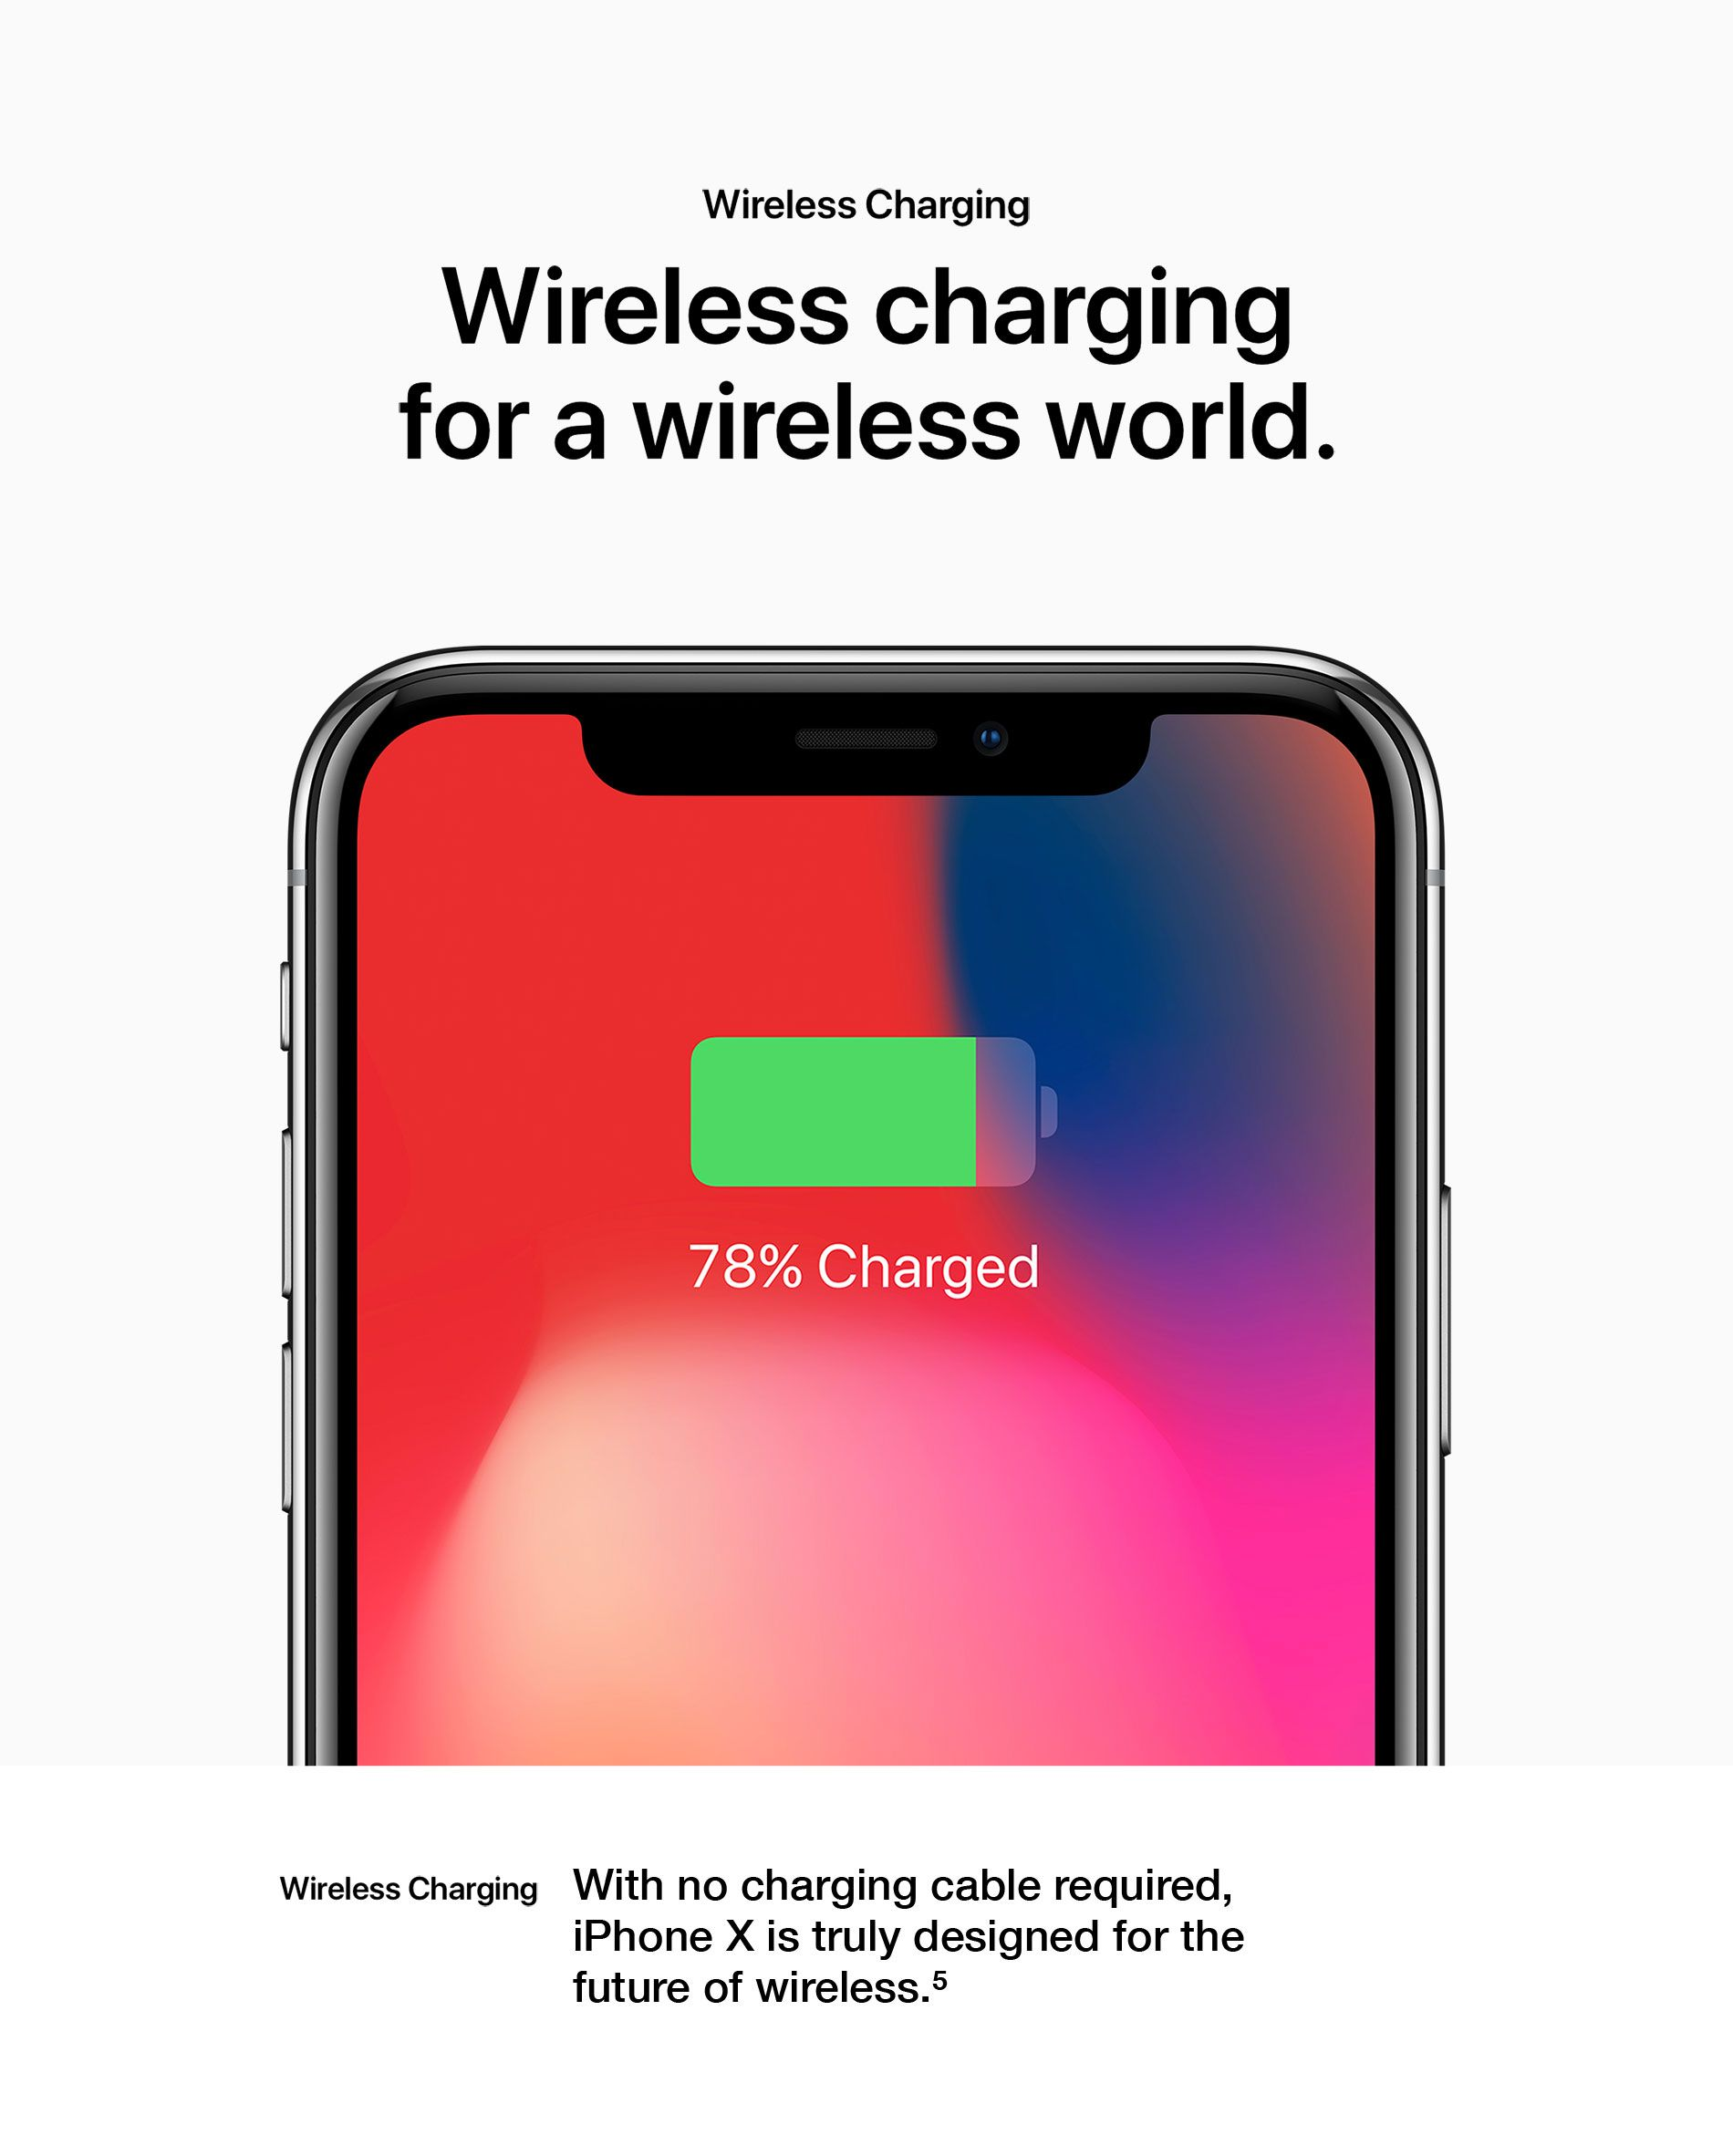 Wireless Charging - Wireless charging for a wireless world.